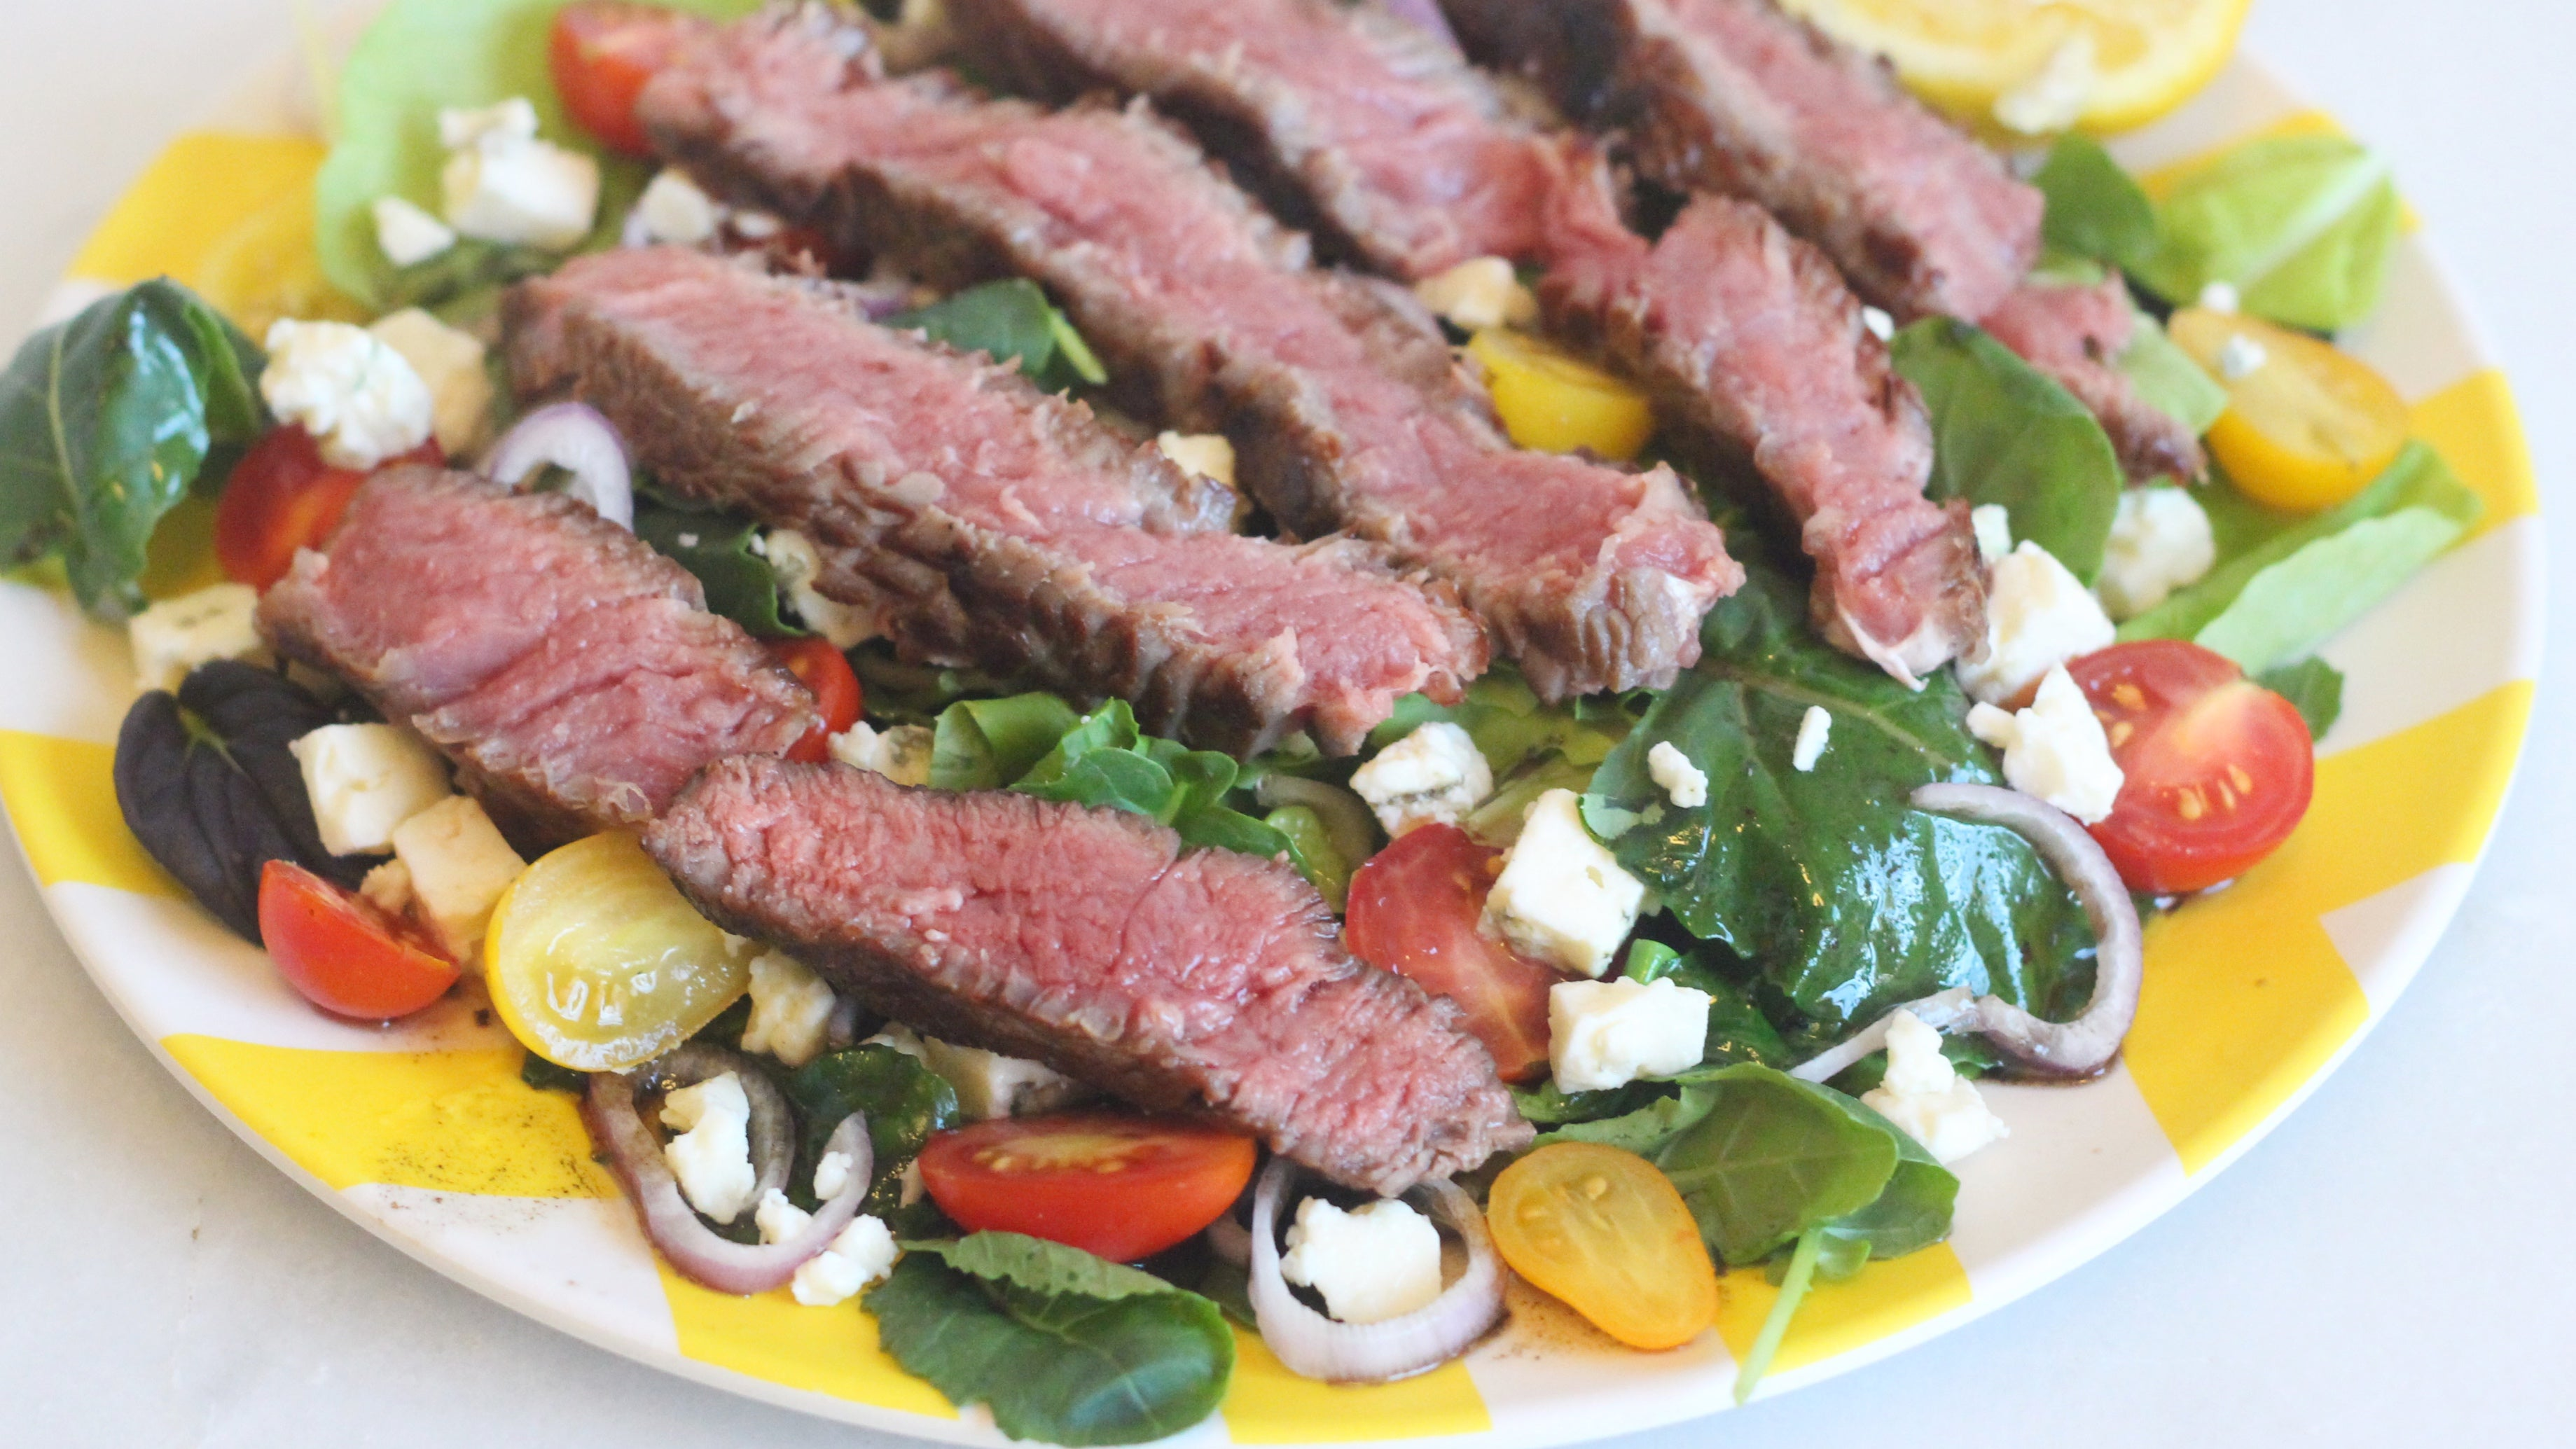 The Best Steak Salad Doesn't Need A Fancy Dressing